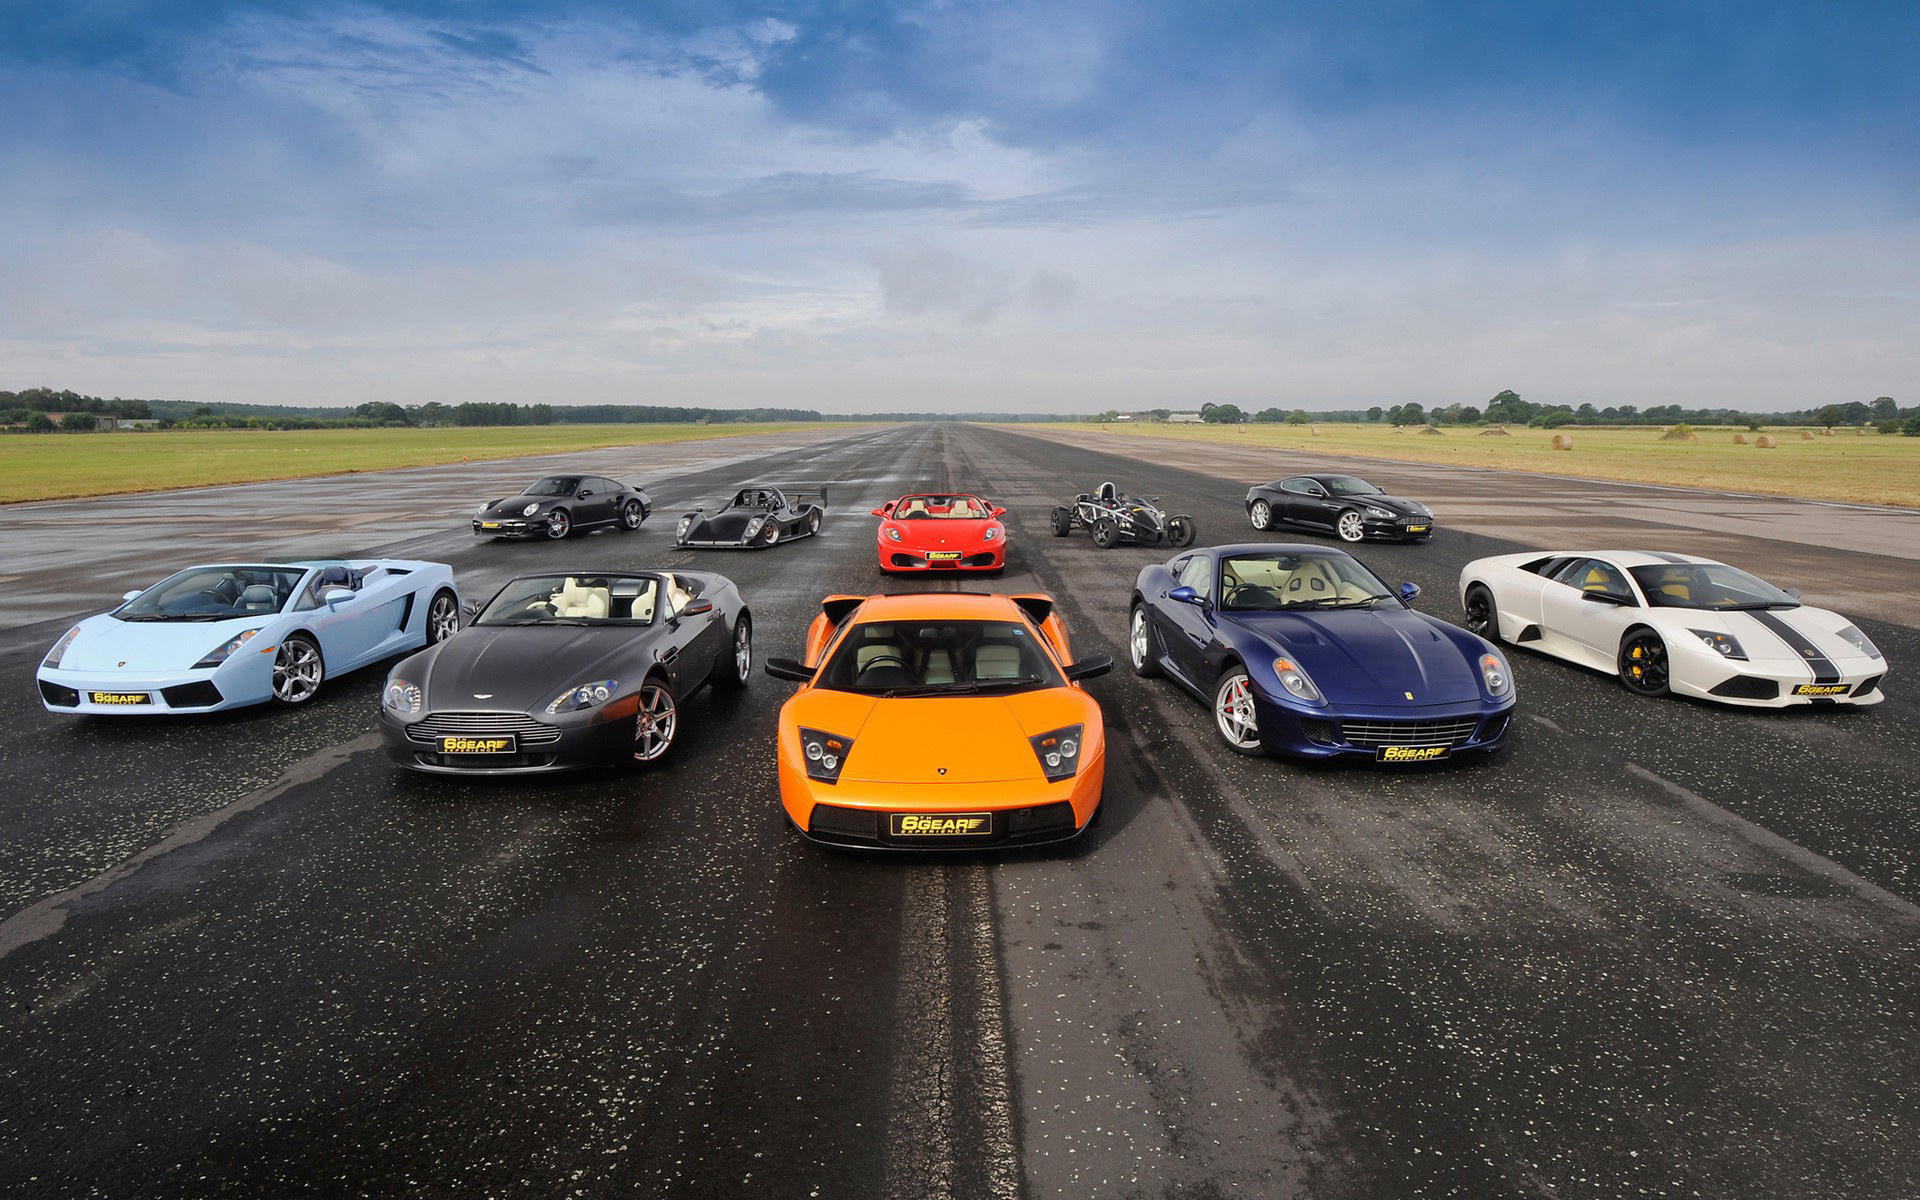 Racing-Cars-Wallpapers-Images-Pictures-Photos